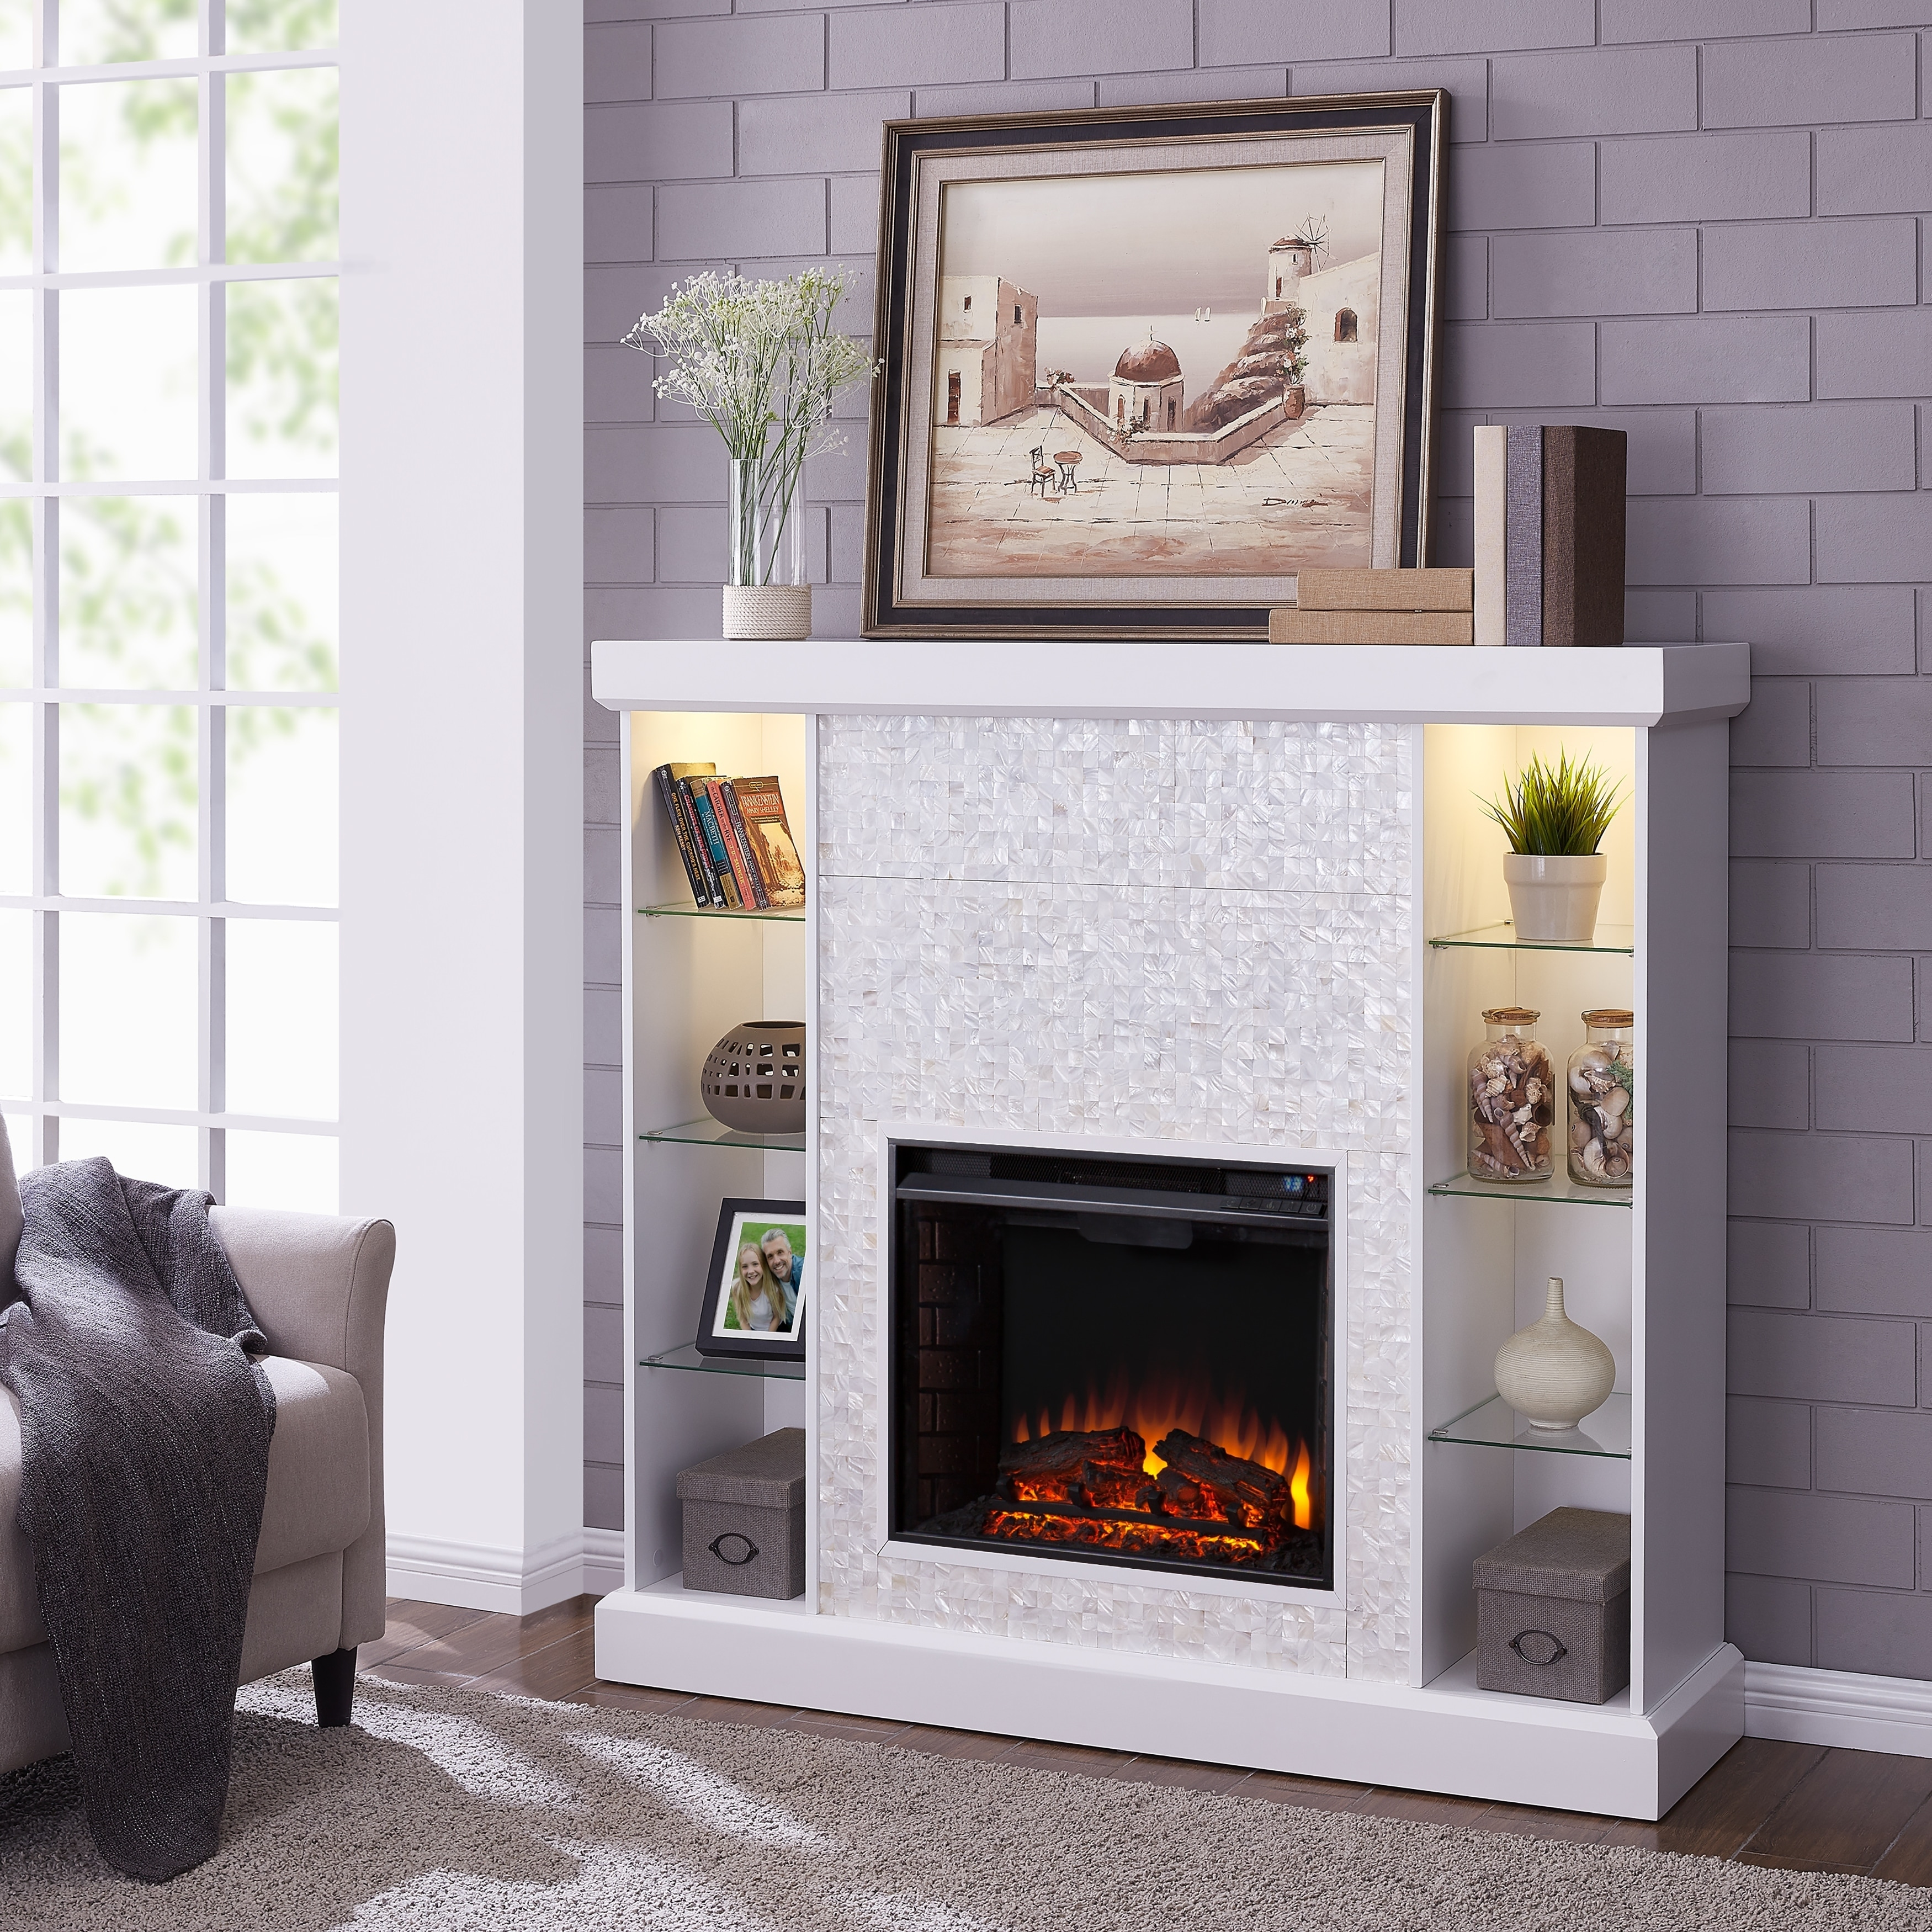 Living Room Electric Fireplace Silver Orchid Niedermann White Mosaic Tiled Curio Electric Fireplace